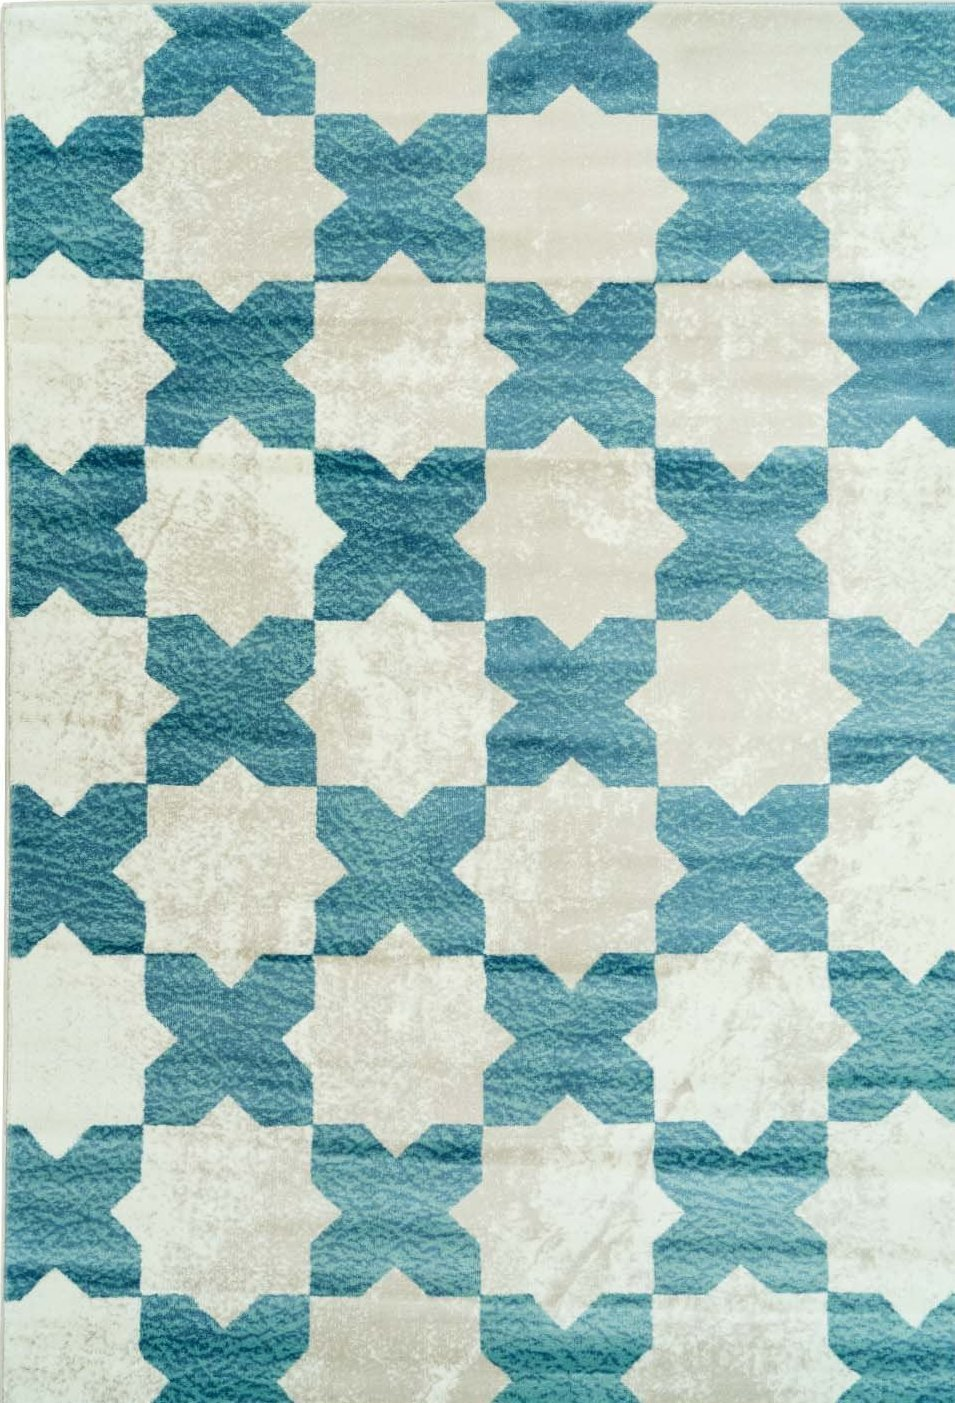 Clover Teal Cream Trellis Area Rug -